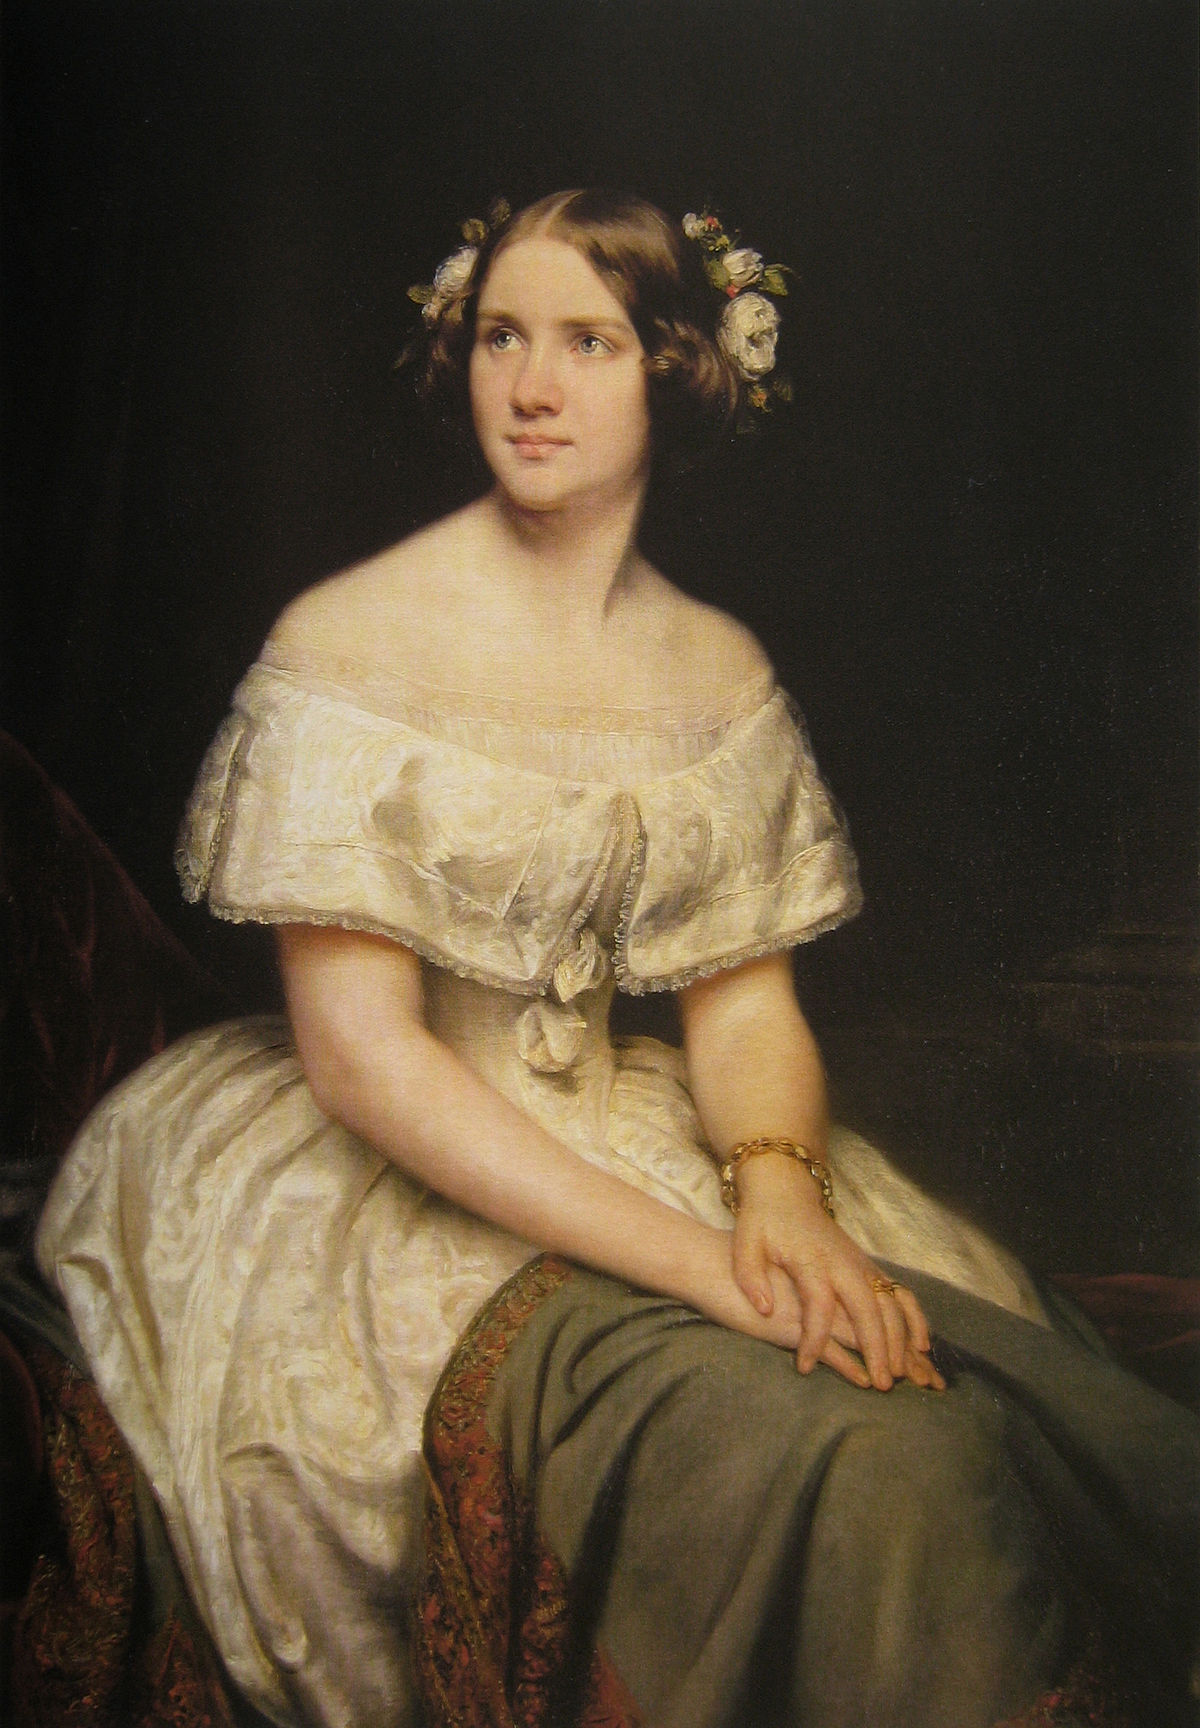 A painted portrait of Jenny Lind, seated with hands folded on her lap.